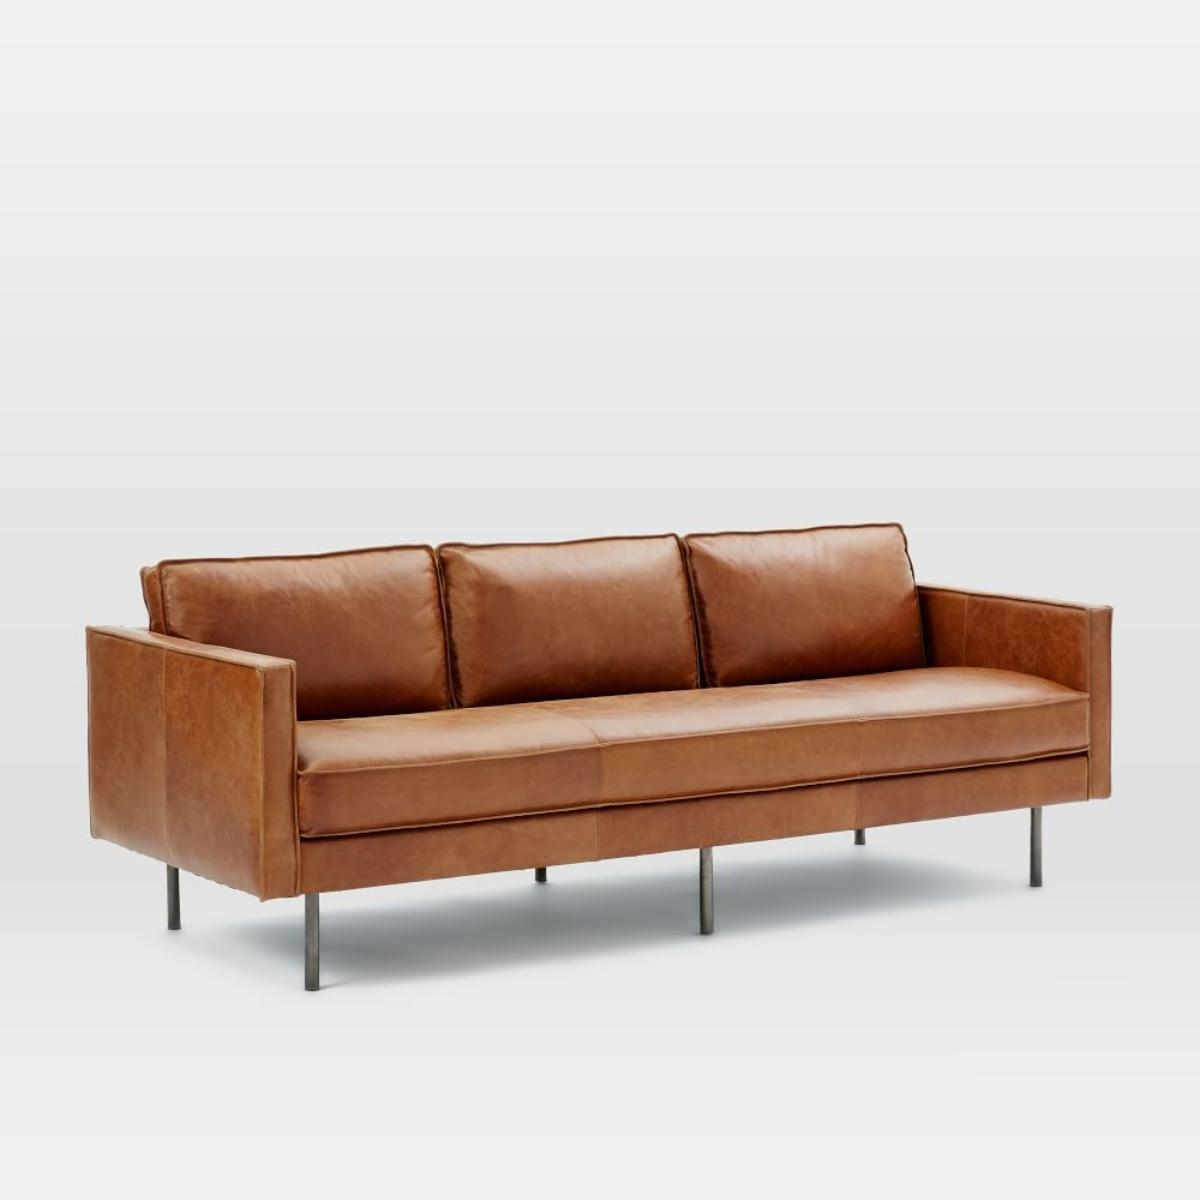 Leather Sofas 29 With Leather Sofas | Jinanhongyu With Leather Sofas (View 12 of 21)